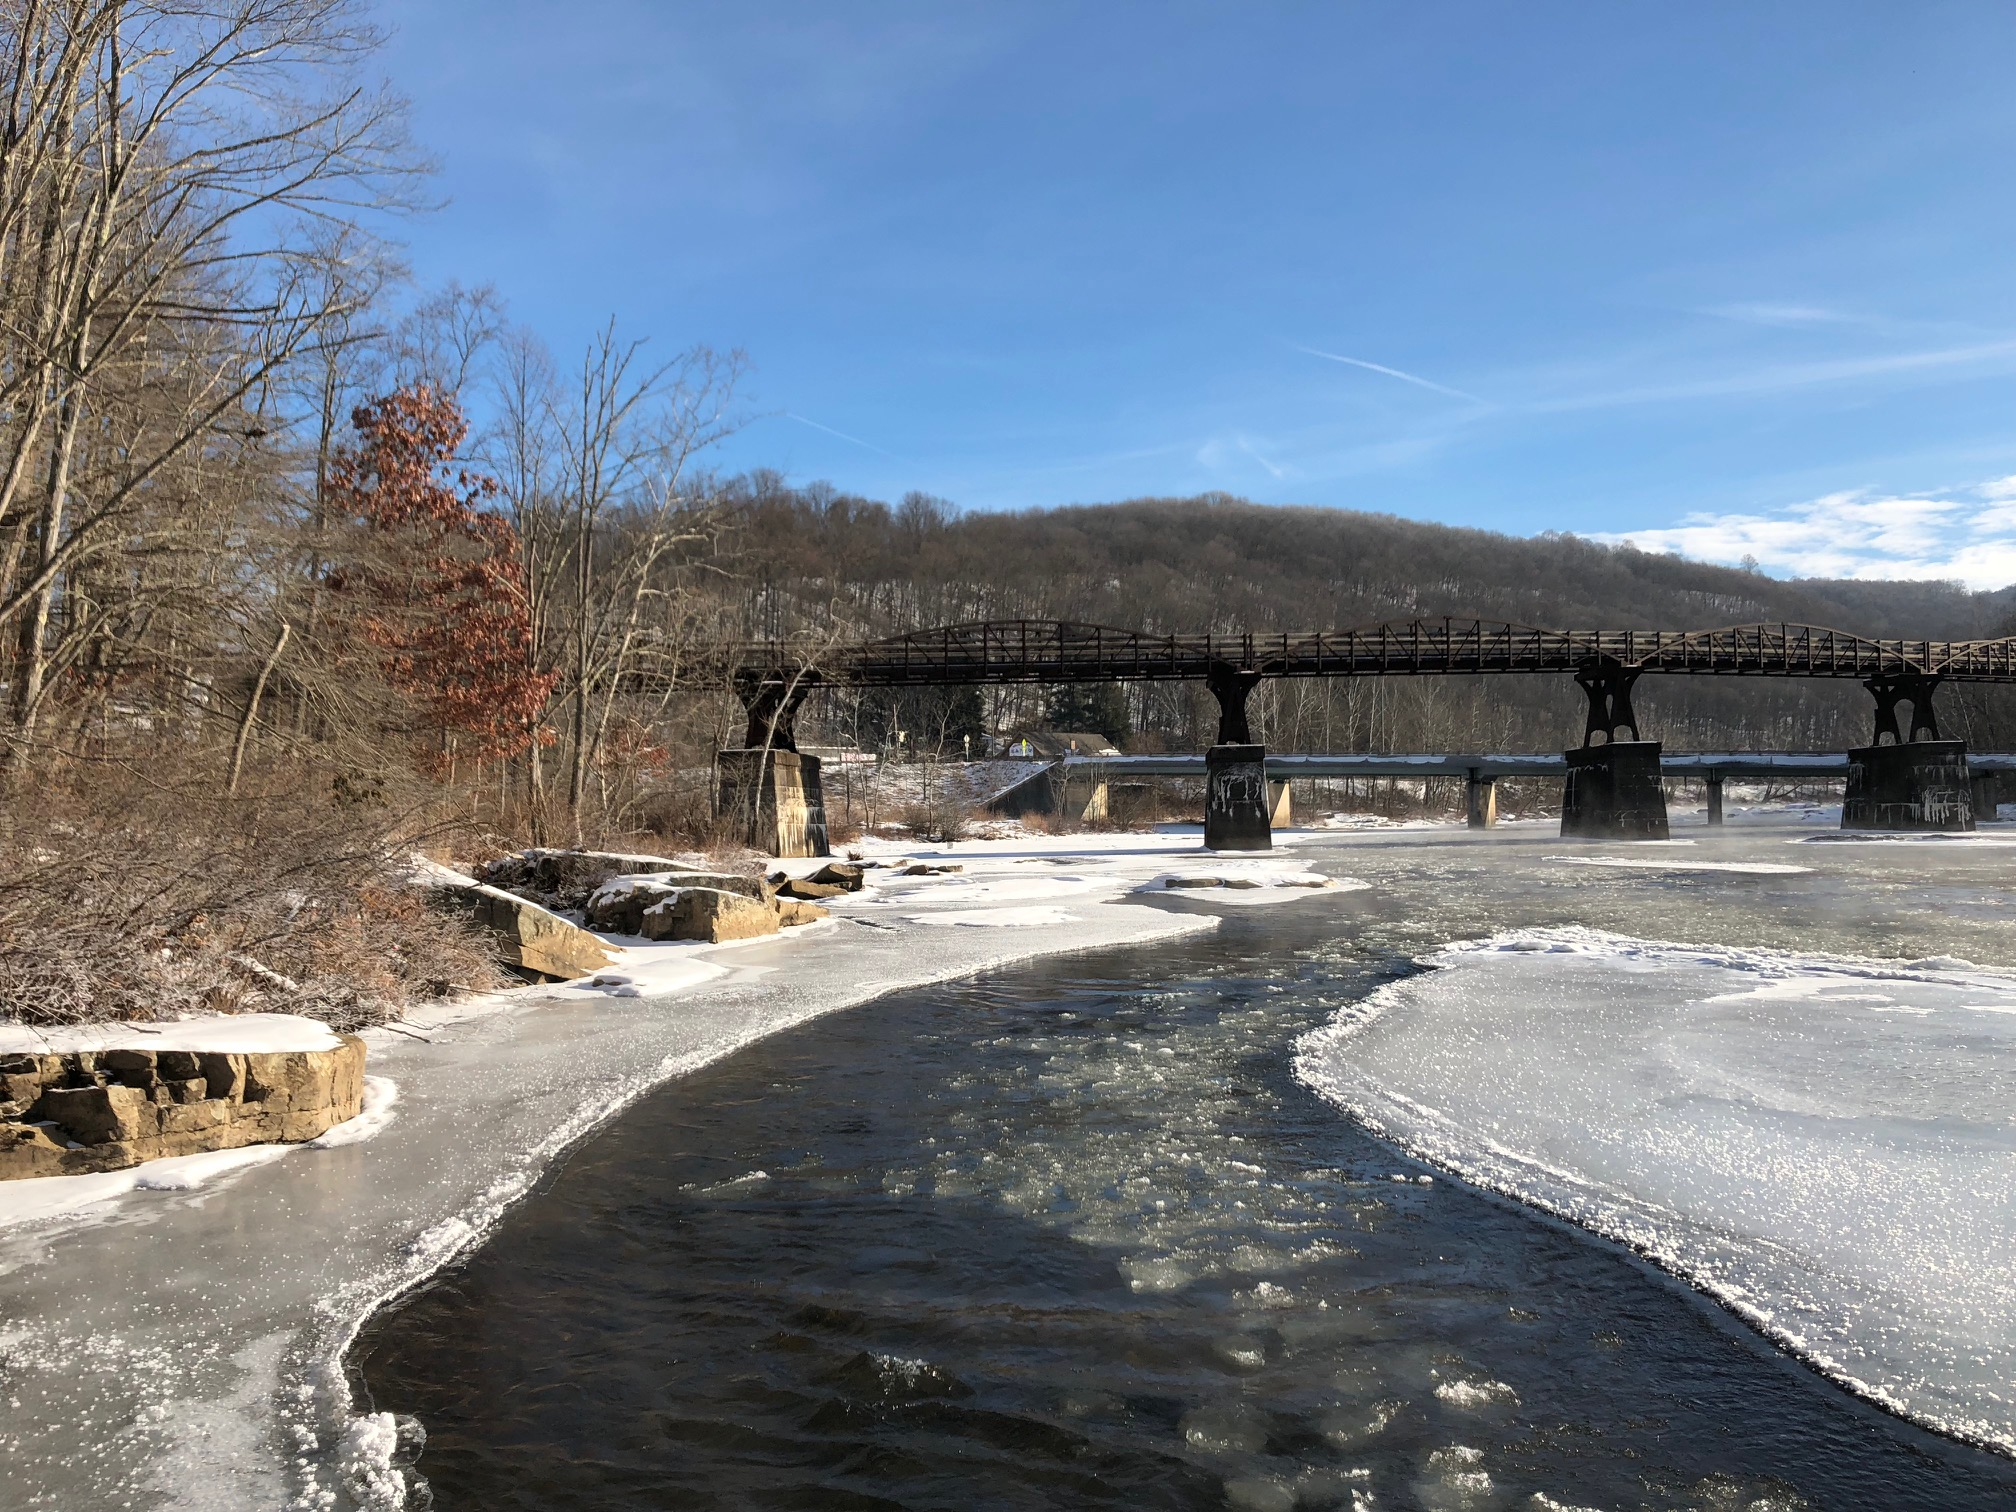 An icy Youghiogheny River at Ohiopyle, Pennsylvania (January 2018).